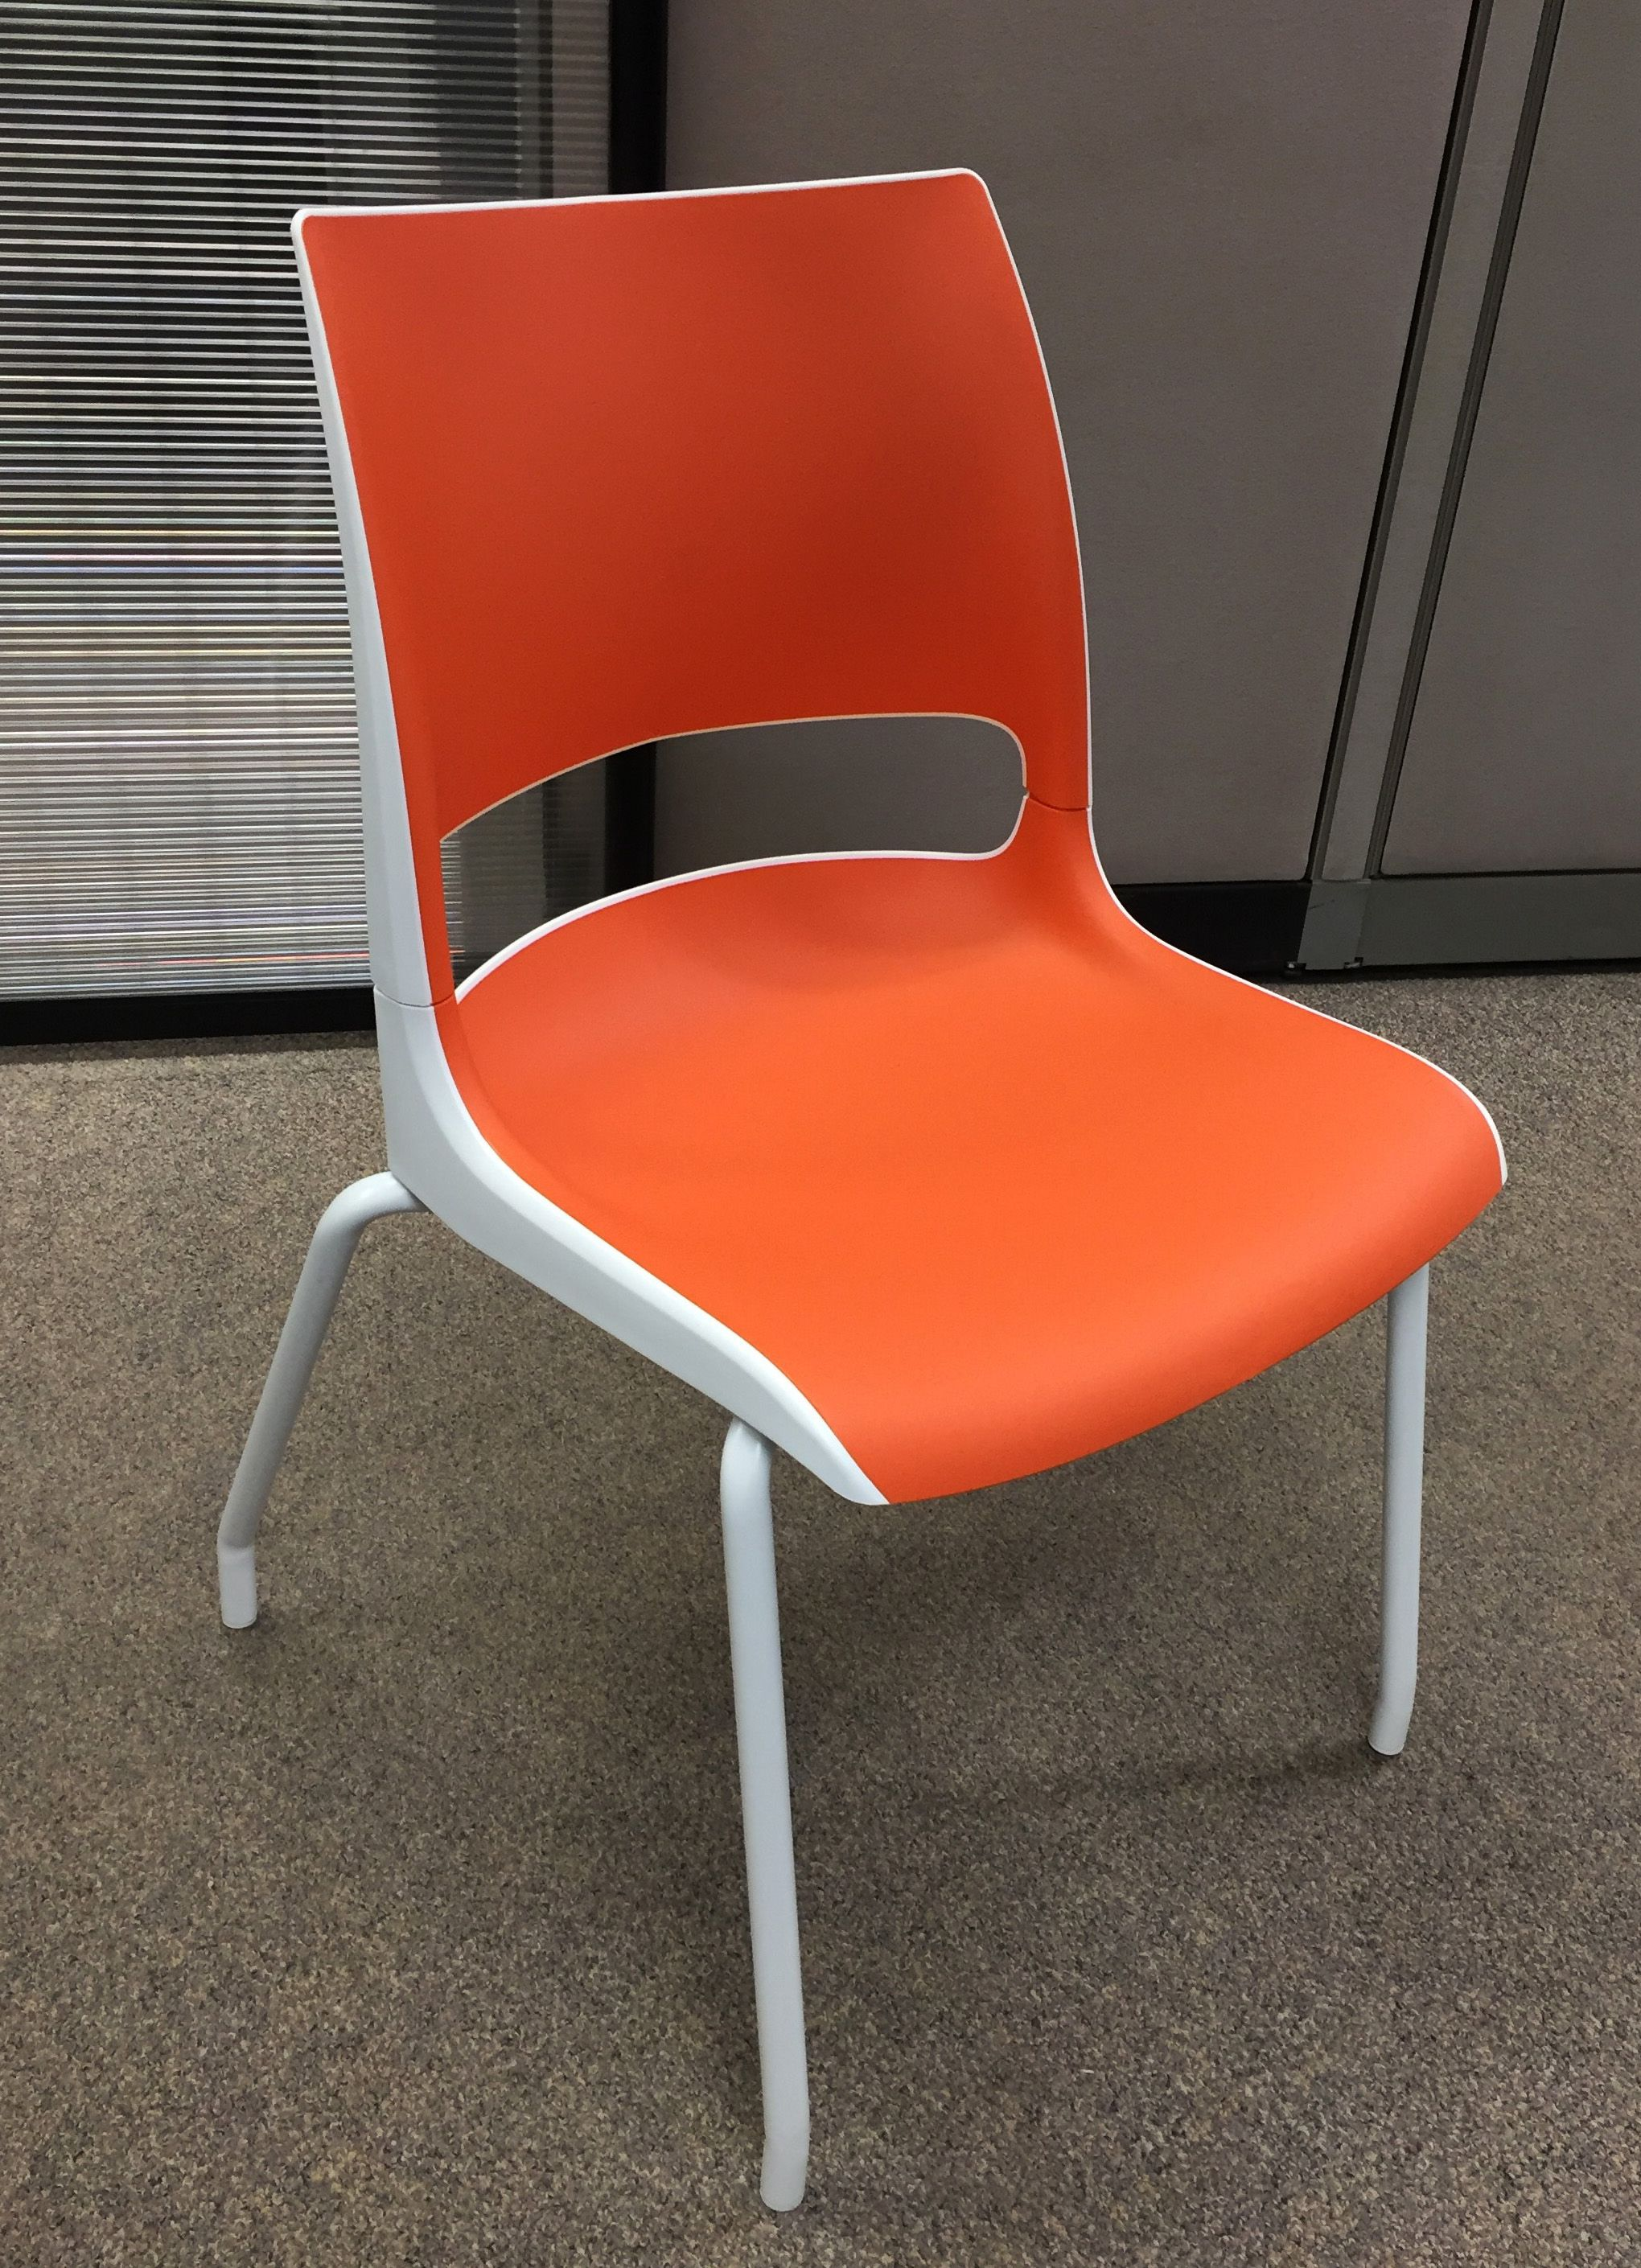 Orange you glad we re showing off this Doni chair from KI Doni